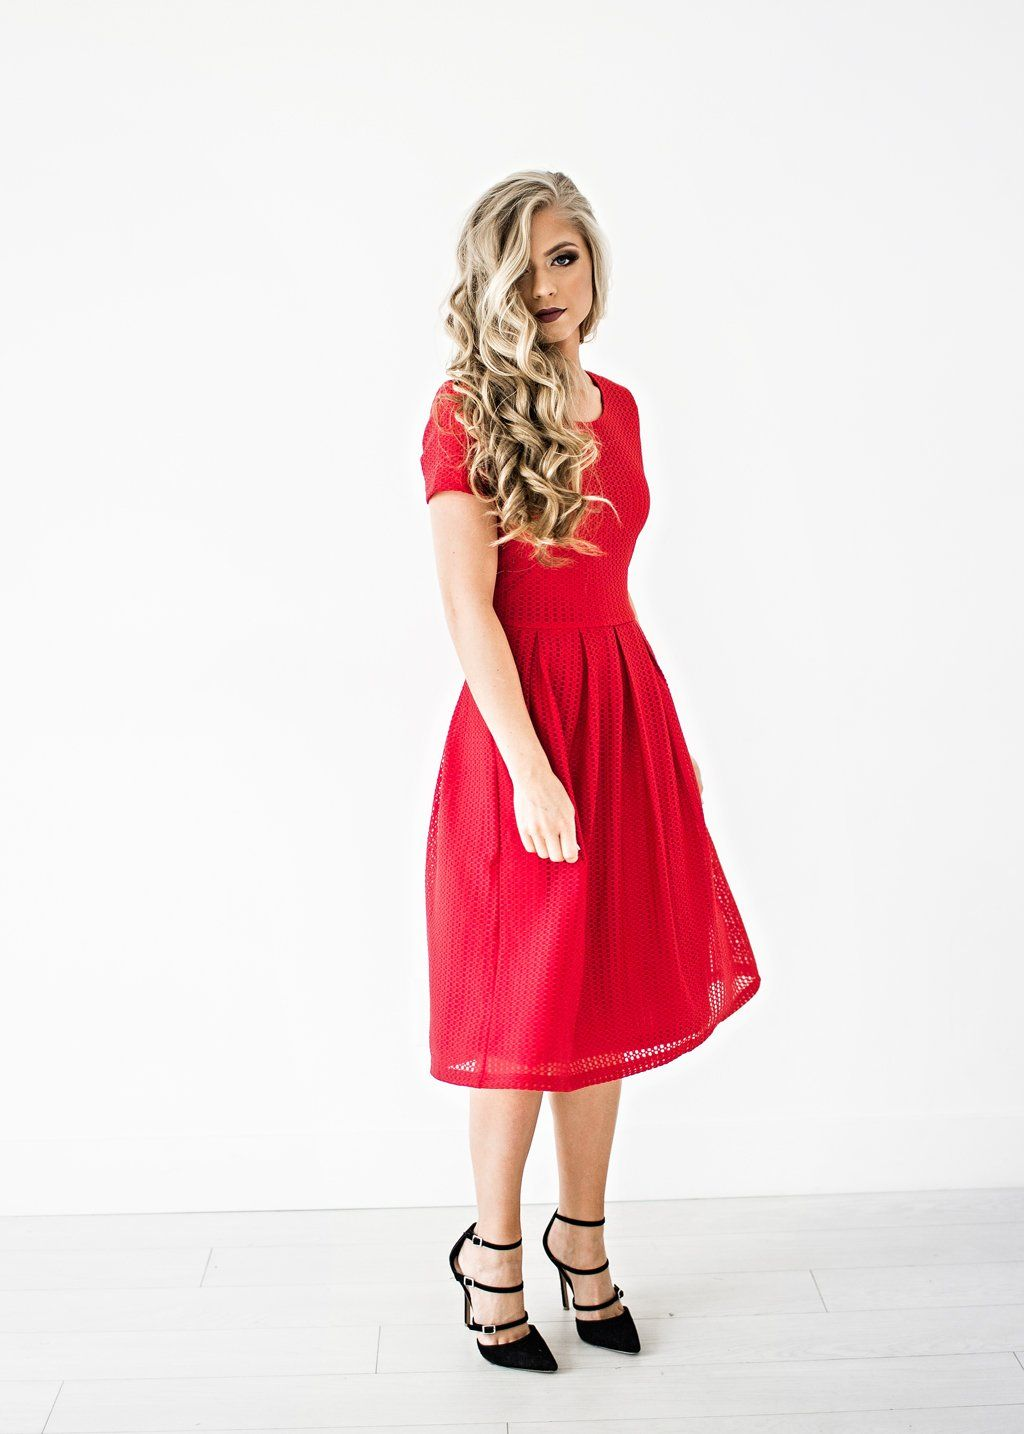 46d467967158 Winslow Cherry Red Dress, holiday dress, christmas dress, embroidered,  makeup, blonde hair, jessakae, style, fashion, ootd, holiday hair and  makeup, red ...